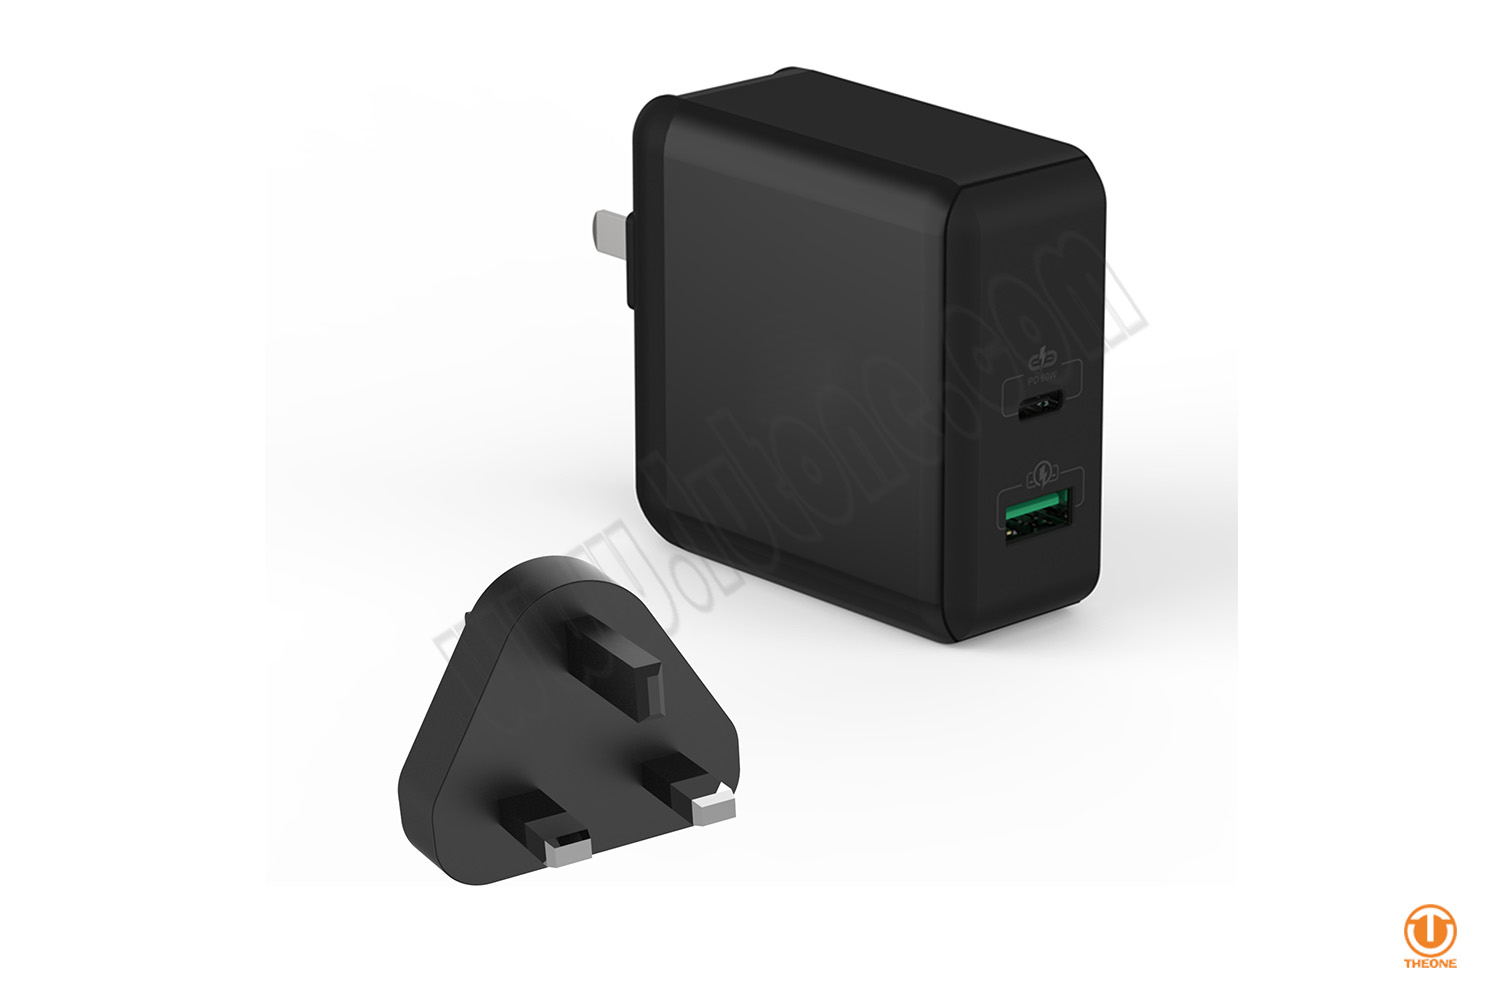 60W USB-C PD Power Adapter (with extra USB port)